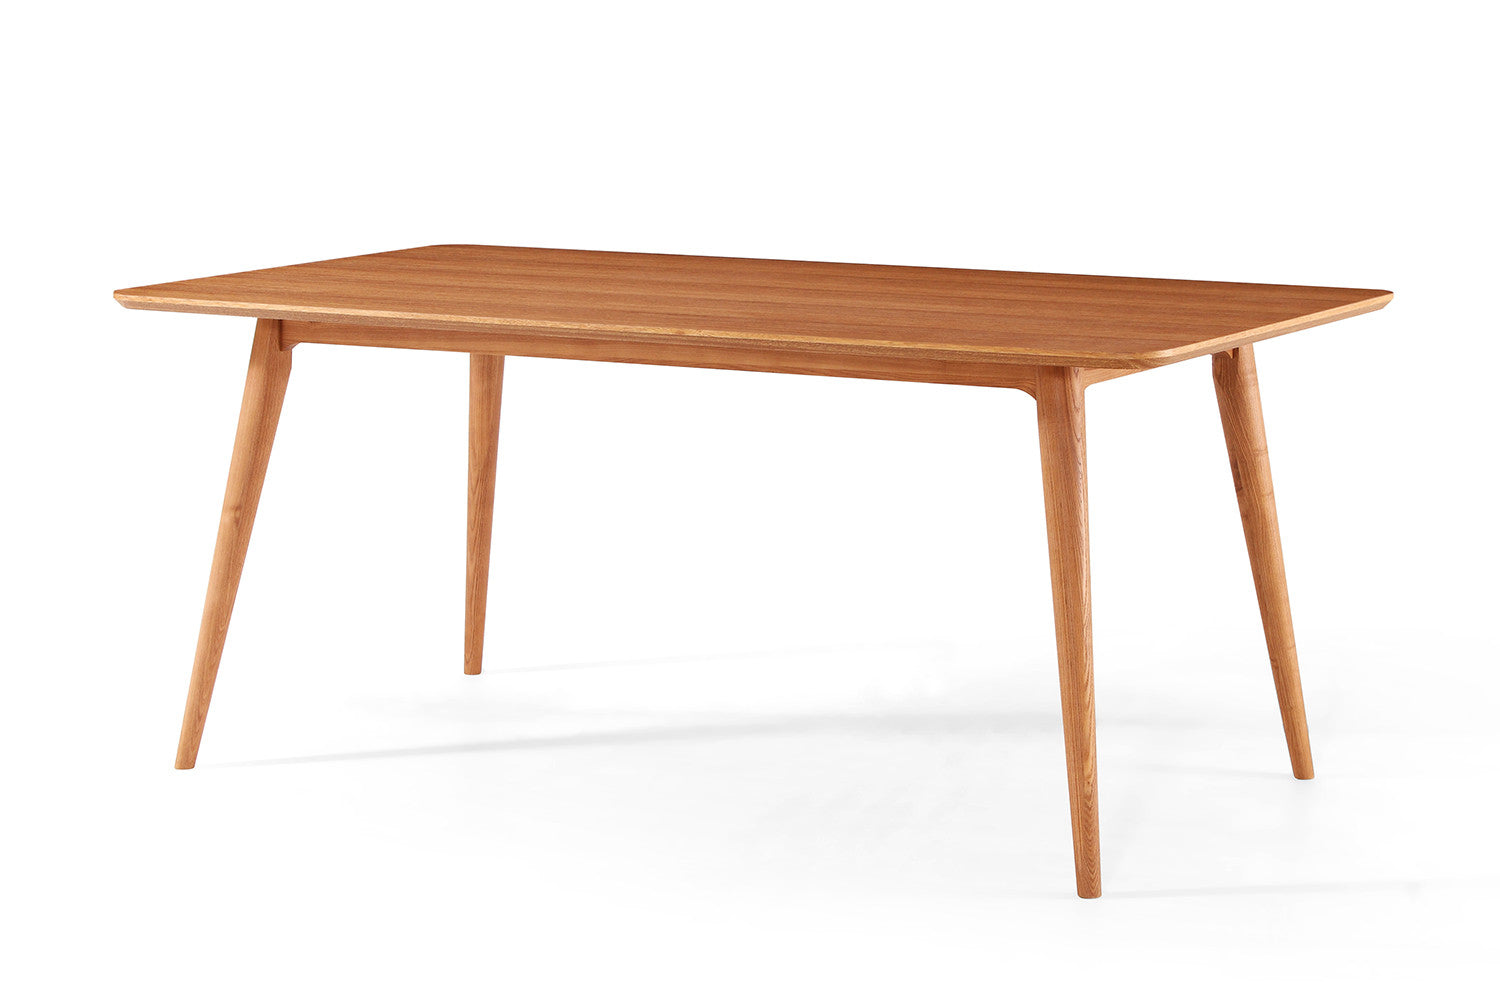 Table de salle manger design en bois julia dewarens for Solde table salle a manger